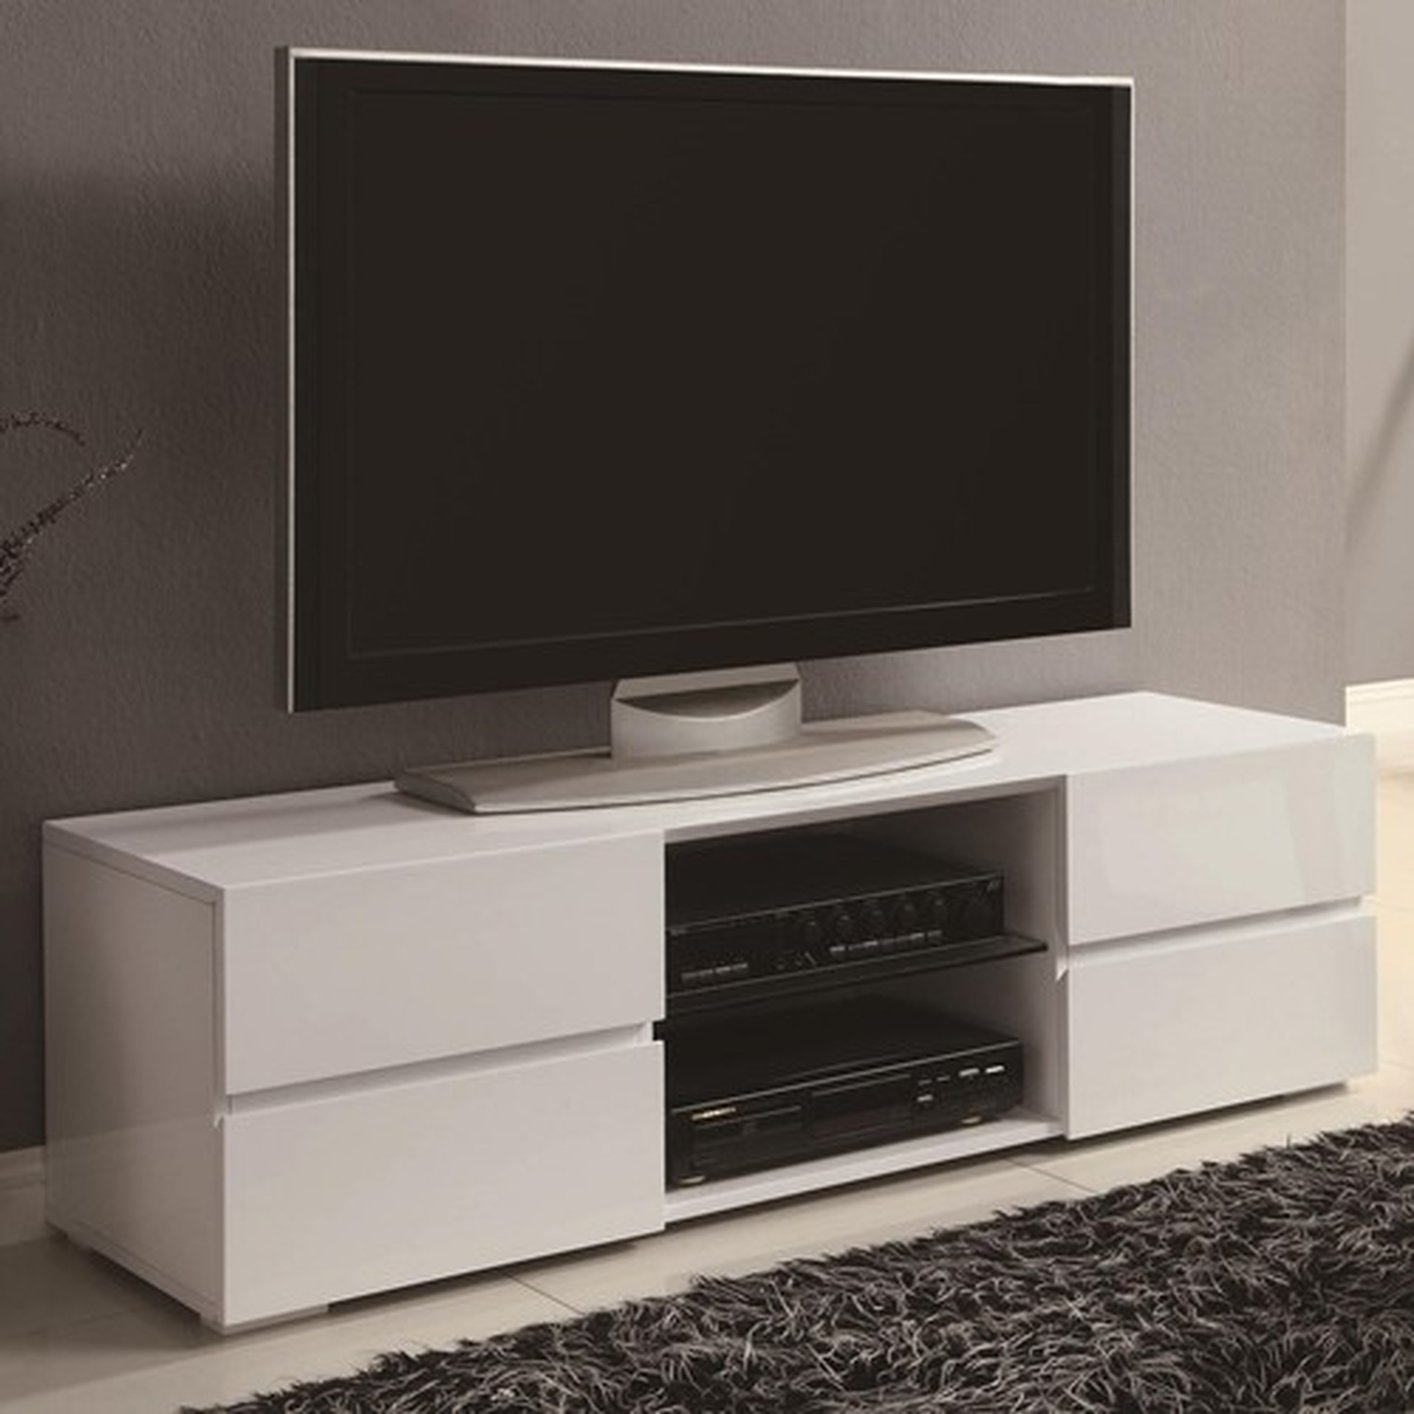 Modish 65 Inch Tv Wood Tv Stand Wood Tv Stand Furniture Outlet Los Angeles Ca Tv Stand 70 Inch Tv Stand houzz-02 White Tv Stand